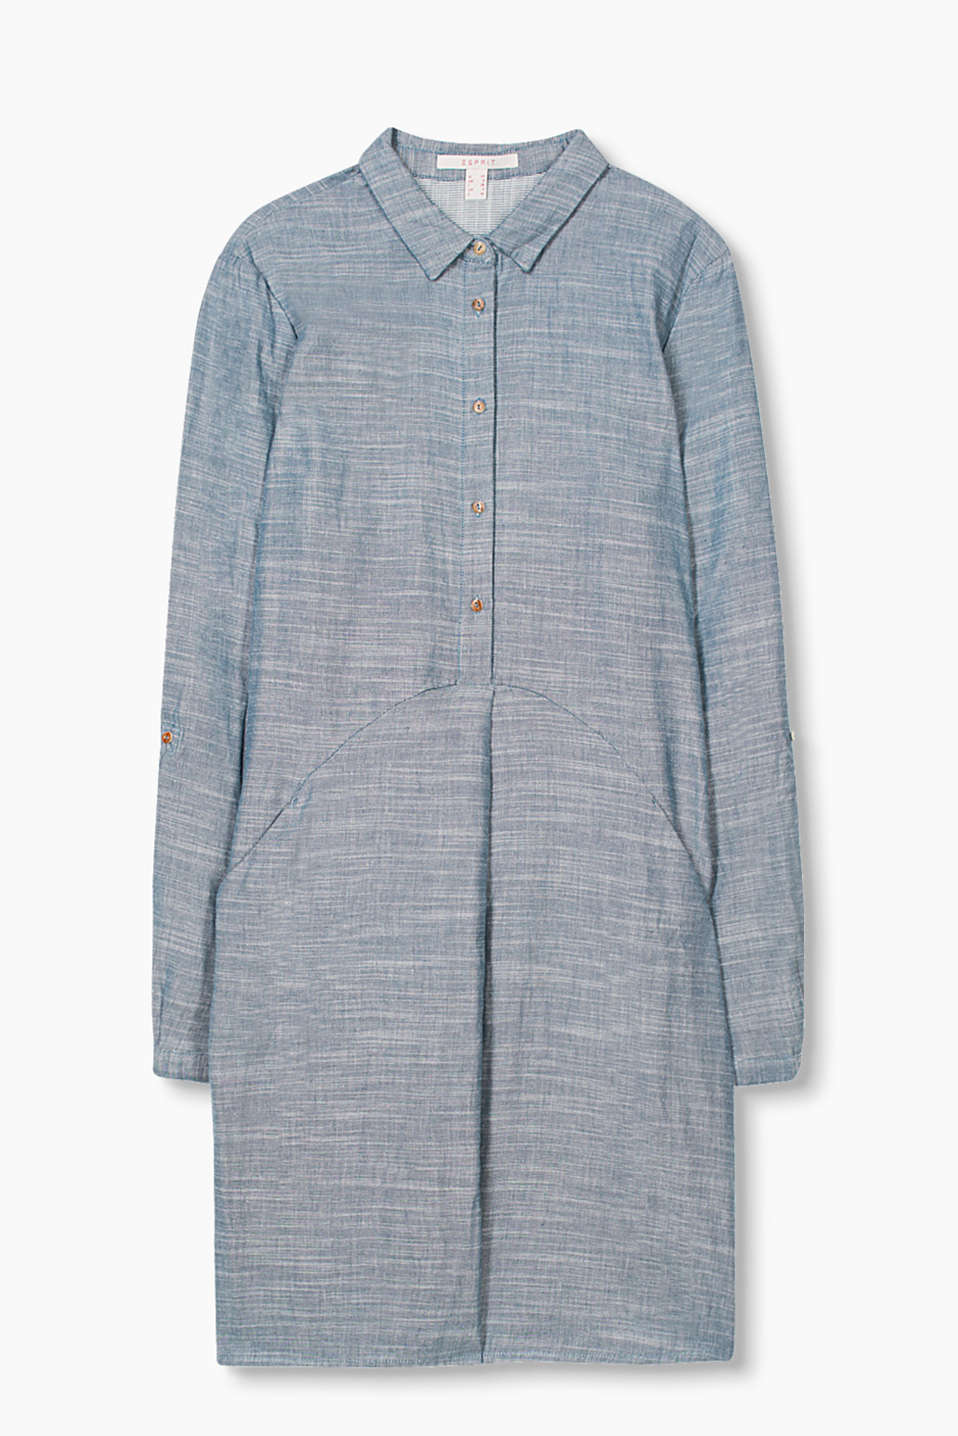 in a melange chambray look, with adjustable turn-up sleeves